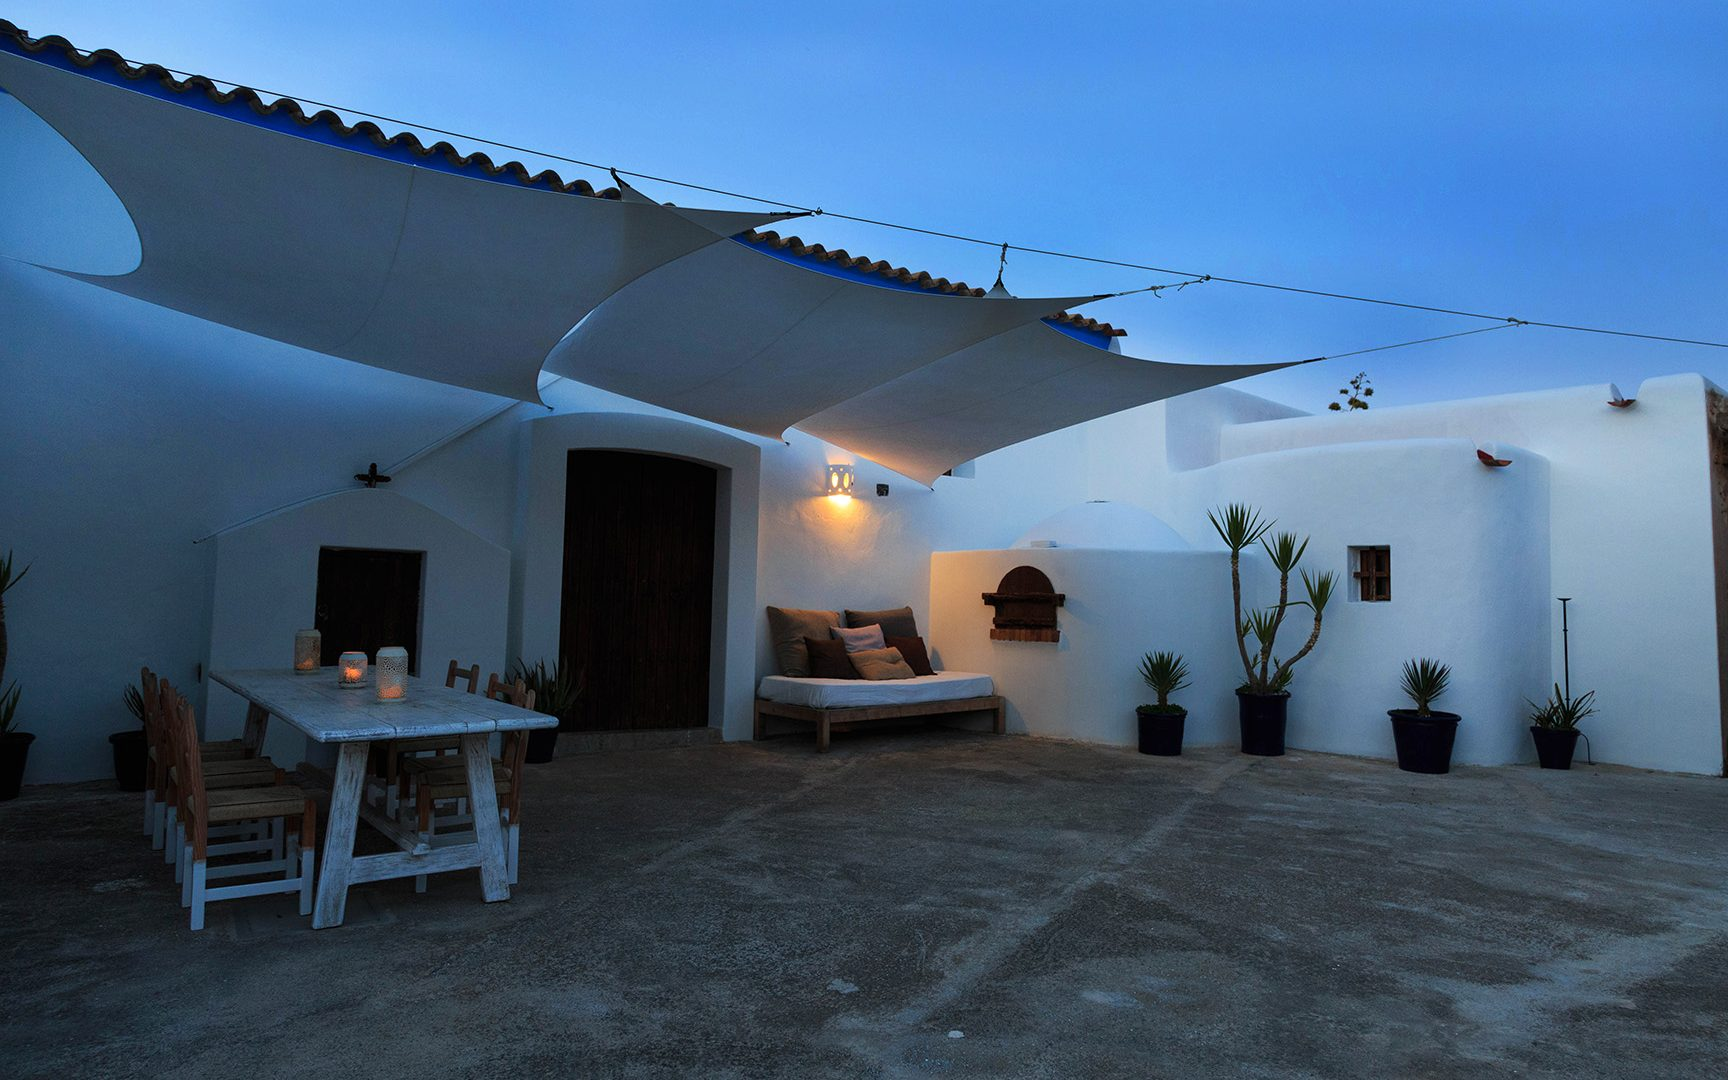 5 bedroom house in Jesús vacational rental